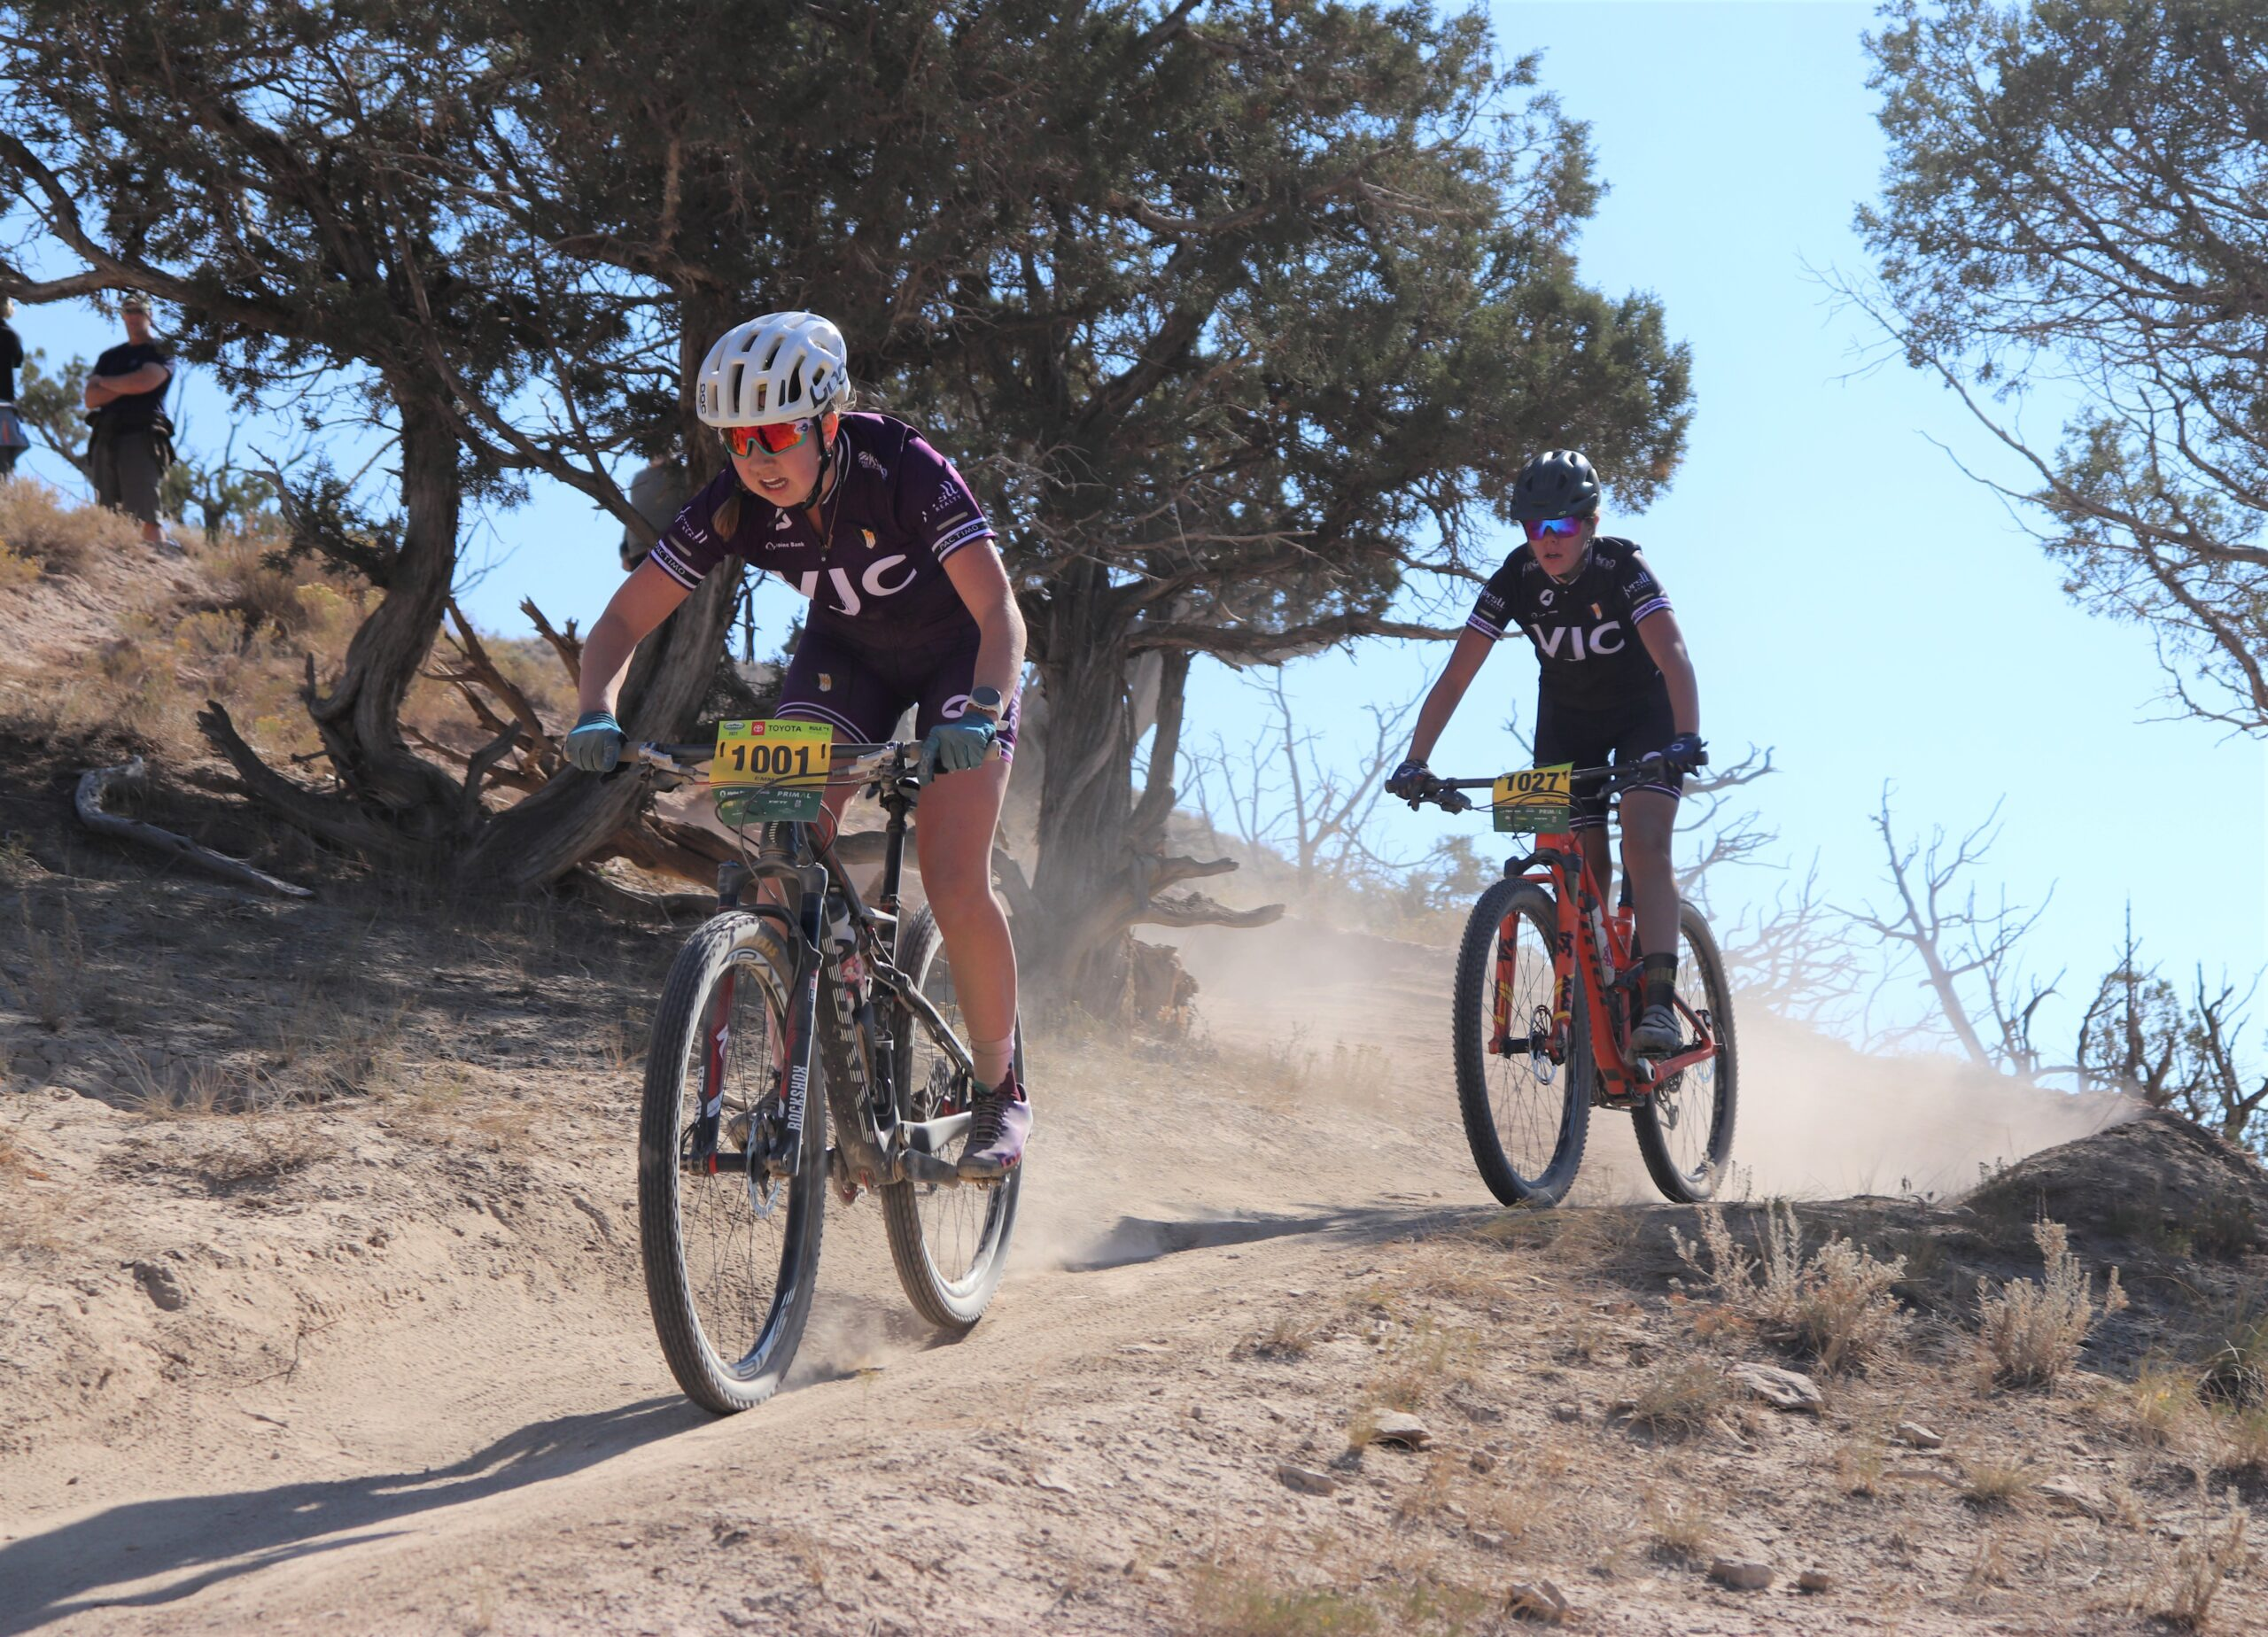 Ski & Snowboard Club Vail Junior Cycling Team riders at the September 25th Haymaker Classic in Eagle - Emma Barsness (in front) and Zosia Skiba (in rear).